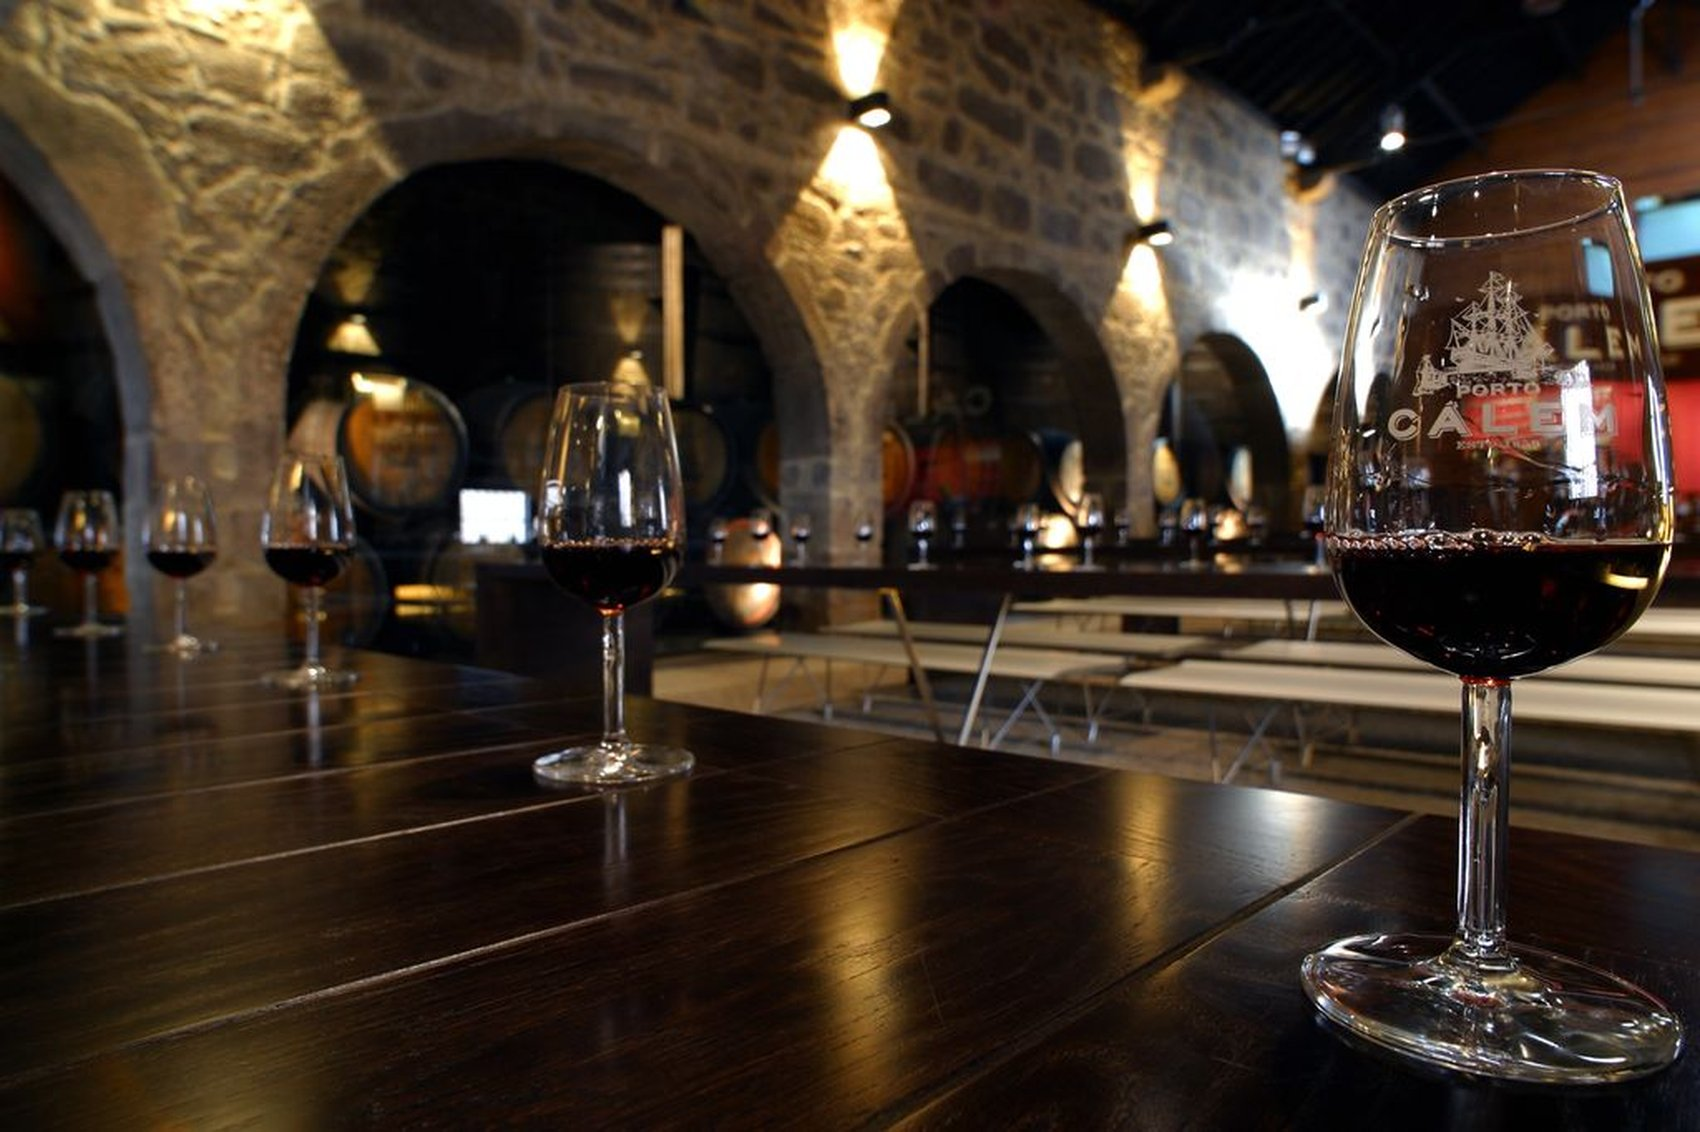 Portugal Getaways - A Tour to the Port Wine Cellars in 2021